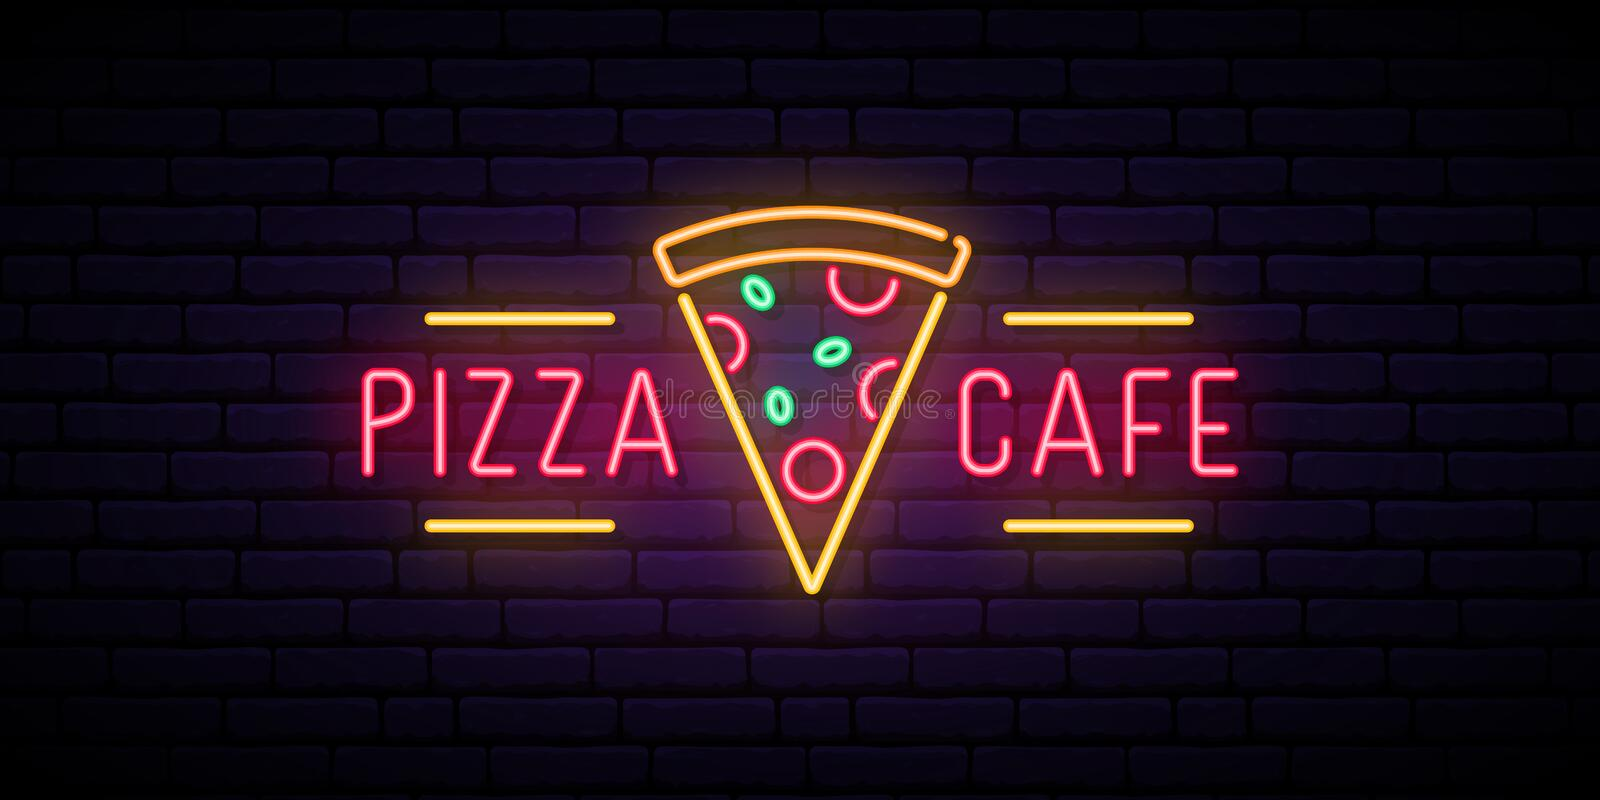 Pizza cafe neon sign. Bright advertising signboard for cafe, bar, restaurant. Pizza emblem. Vector illustration in neon style royalty free illustration